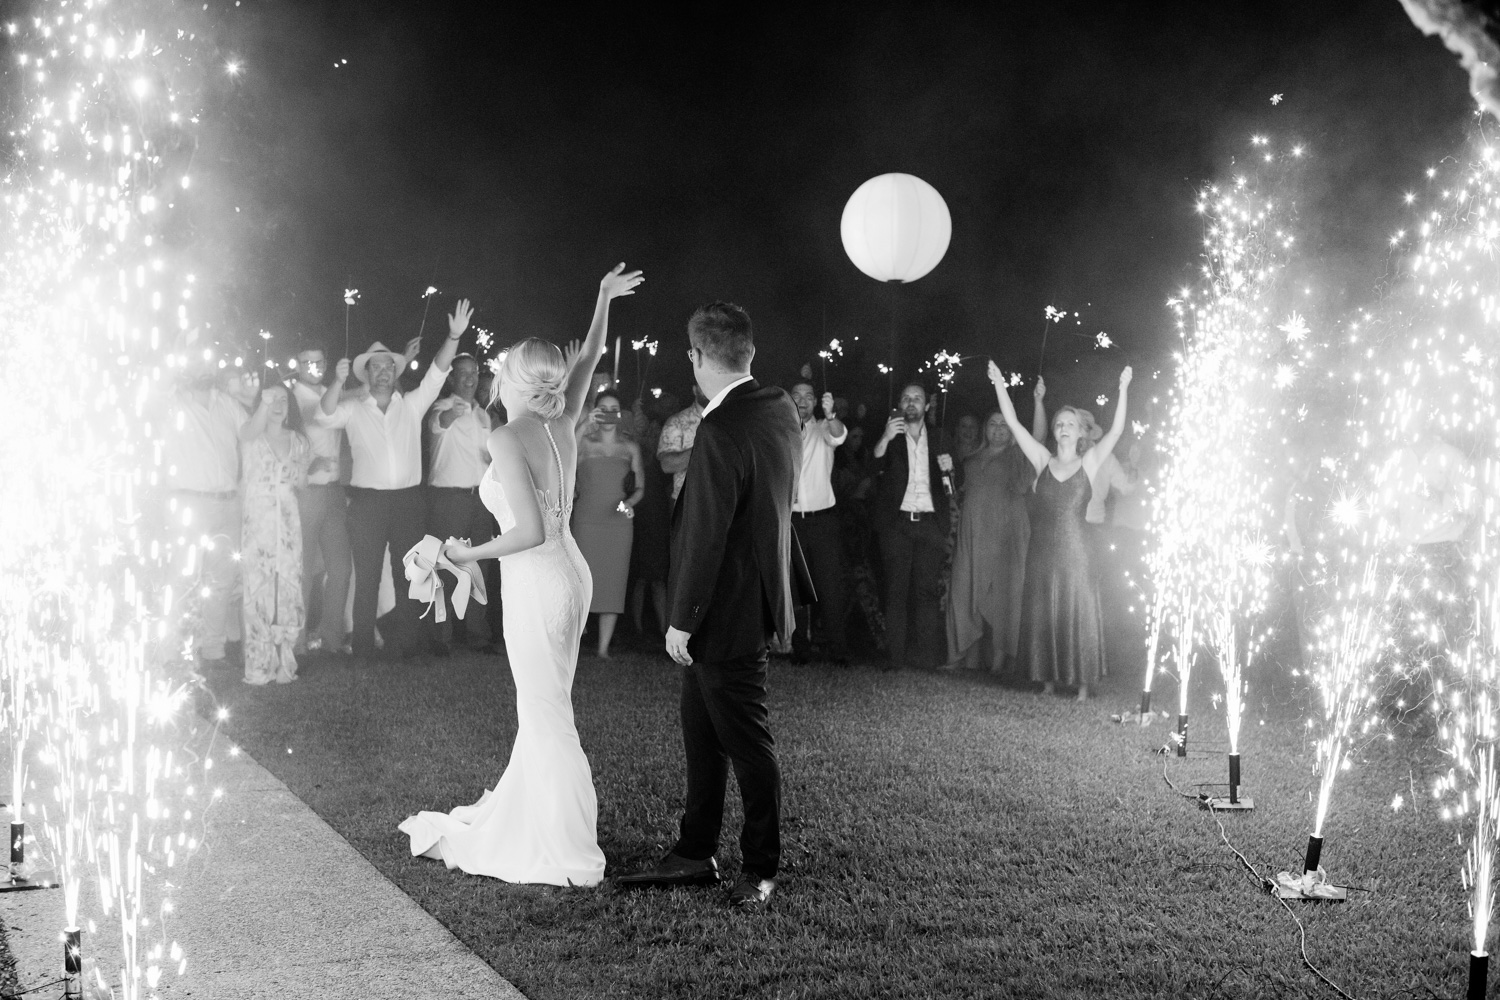 wedding-0166-outrigger-reception-fireworks-goodby-exit-brisbane.jpg